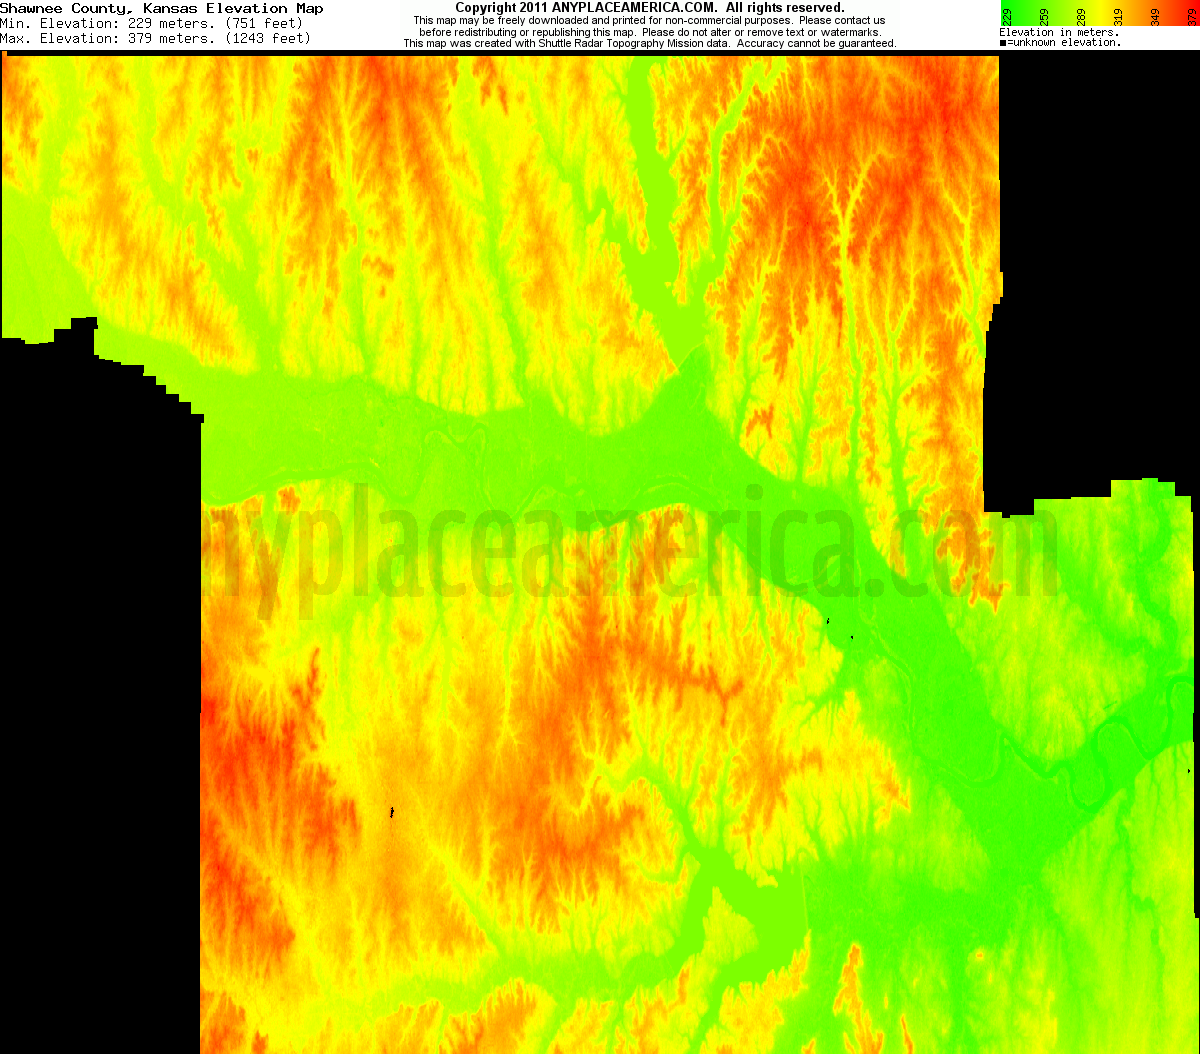 Download Shawnee County Elevation Map